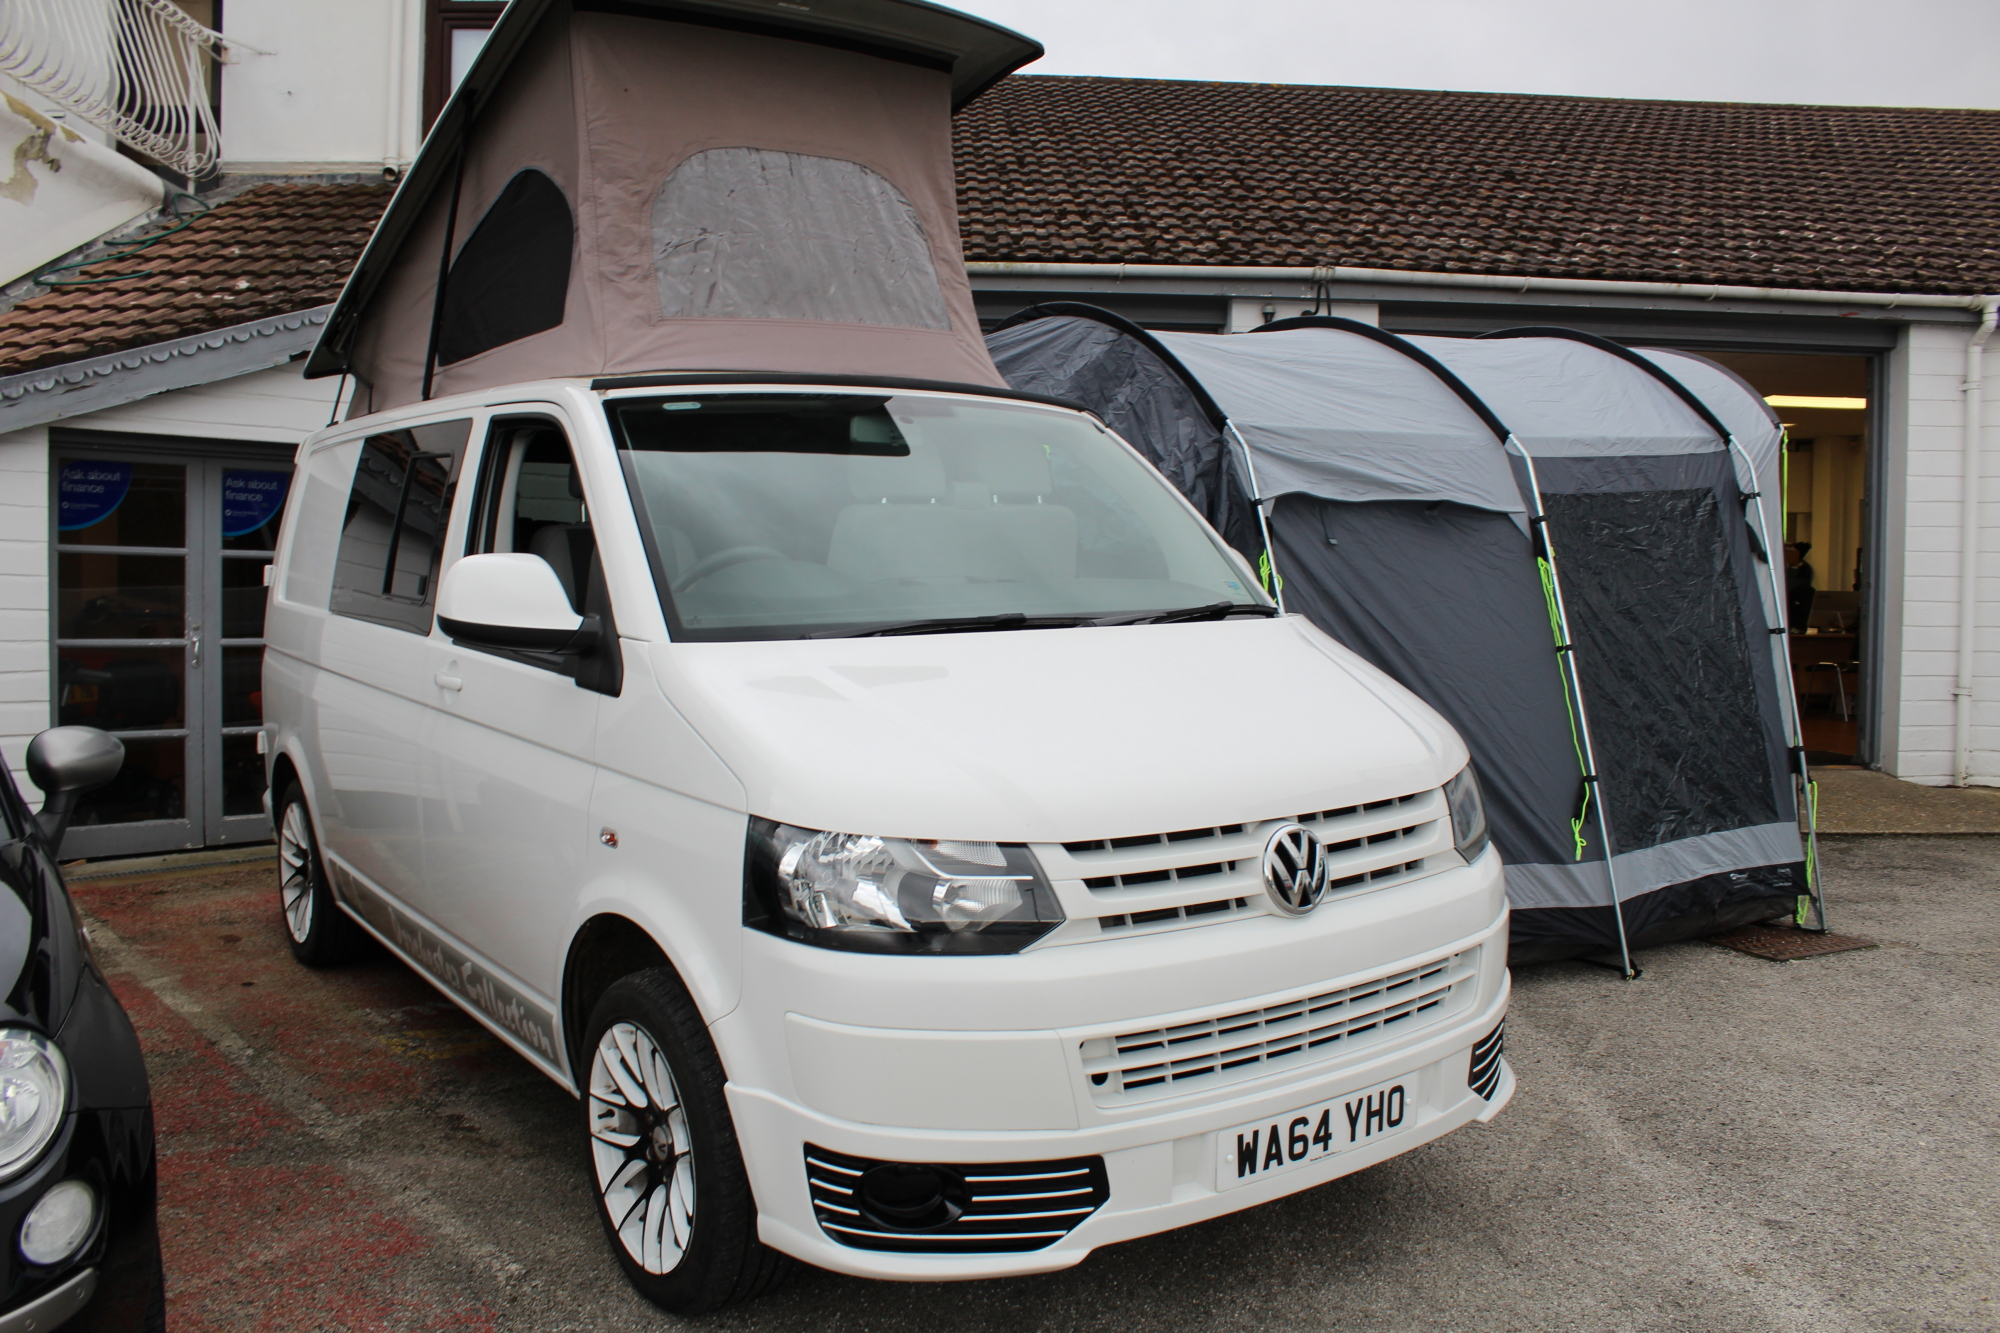 Volkswagen Transporter T5 4-Berth Campervan with awning